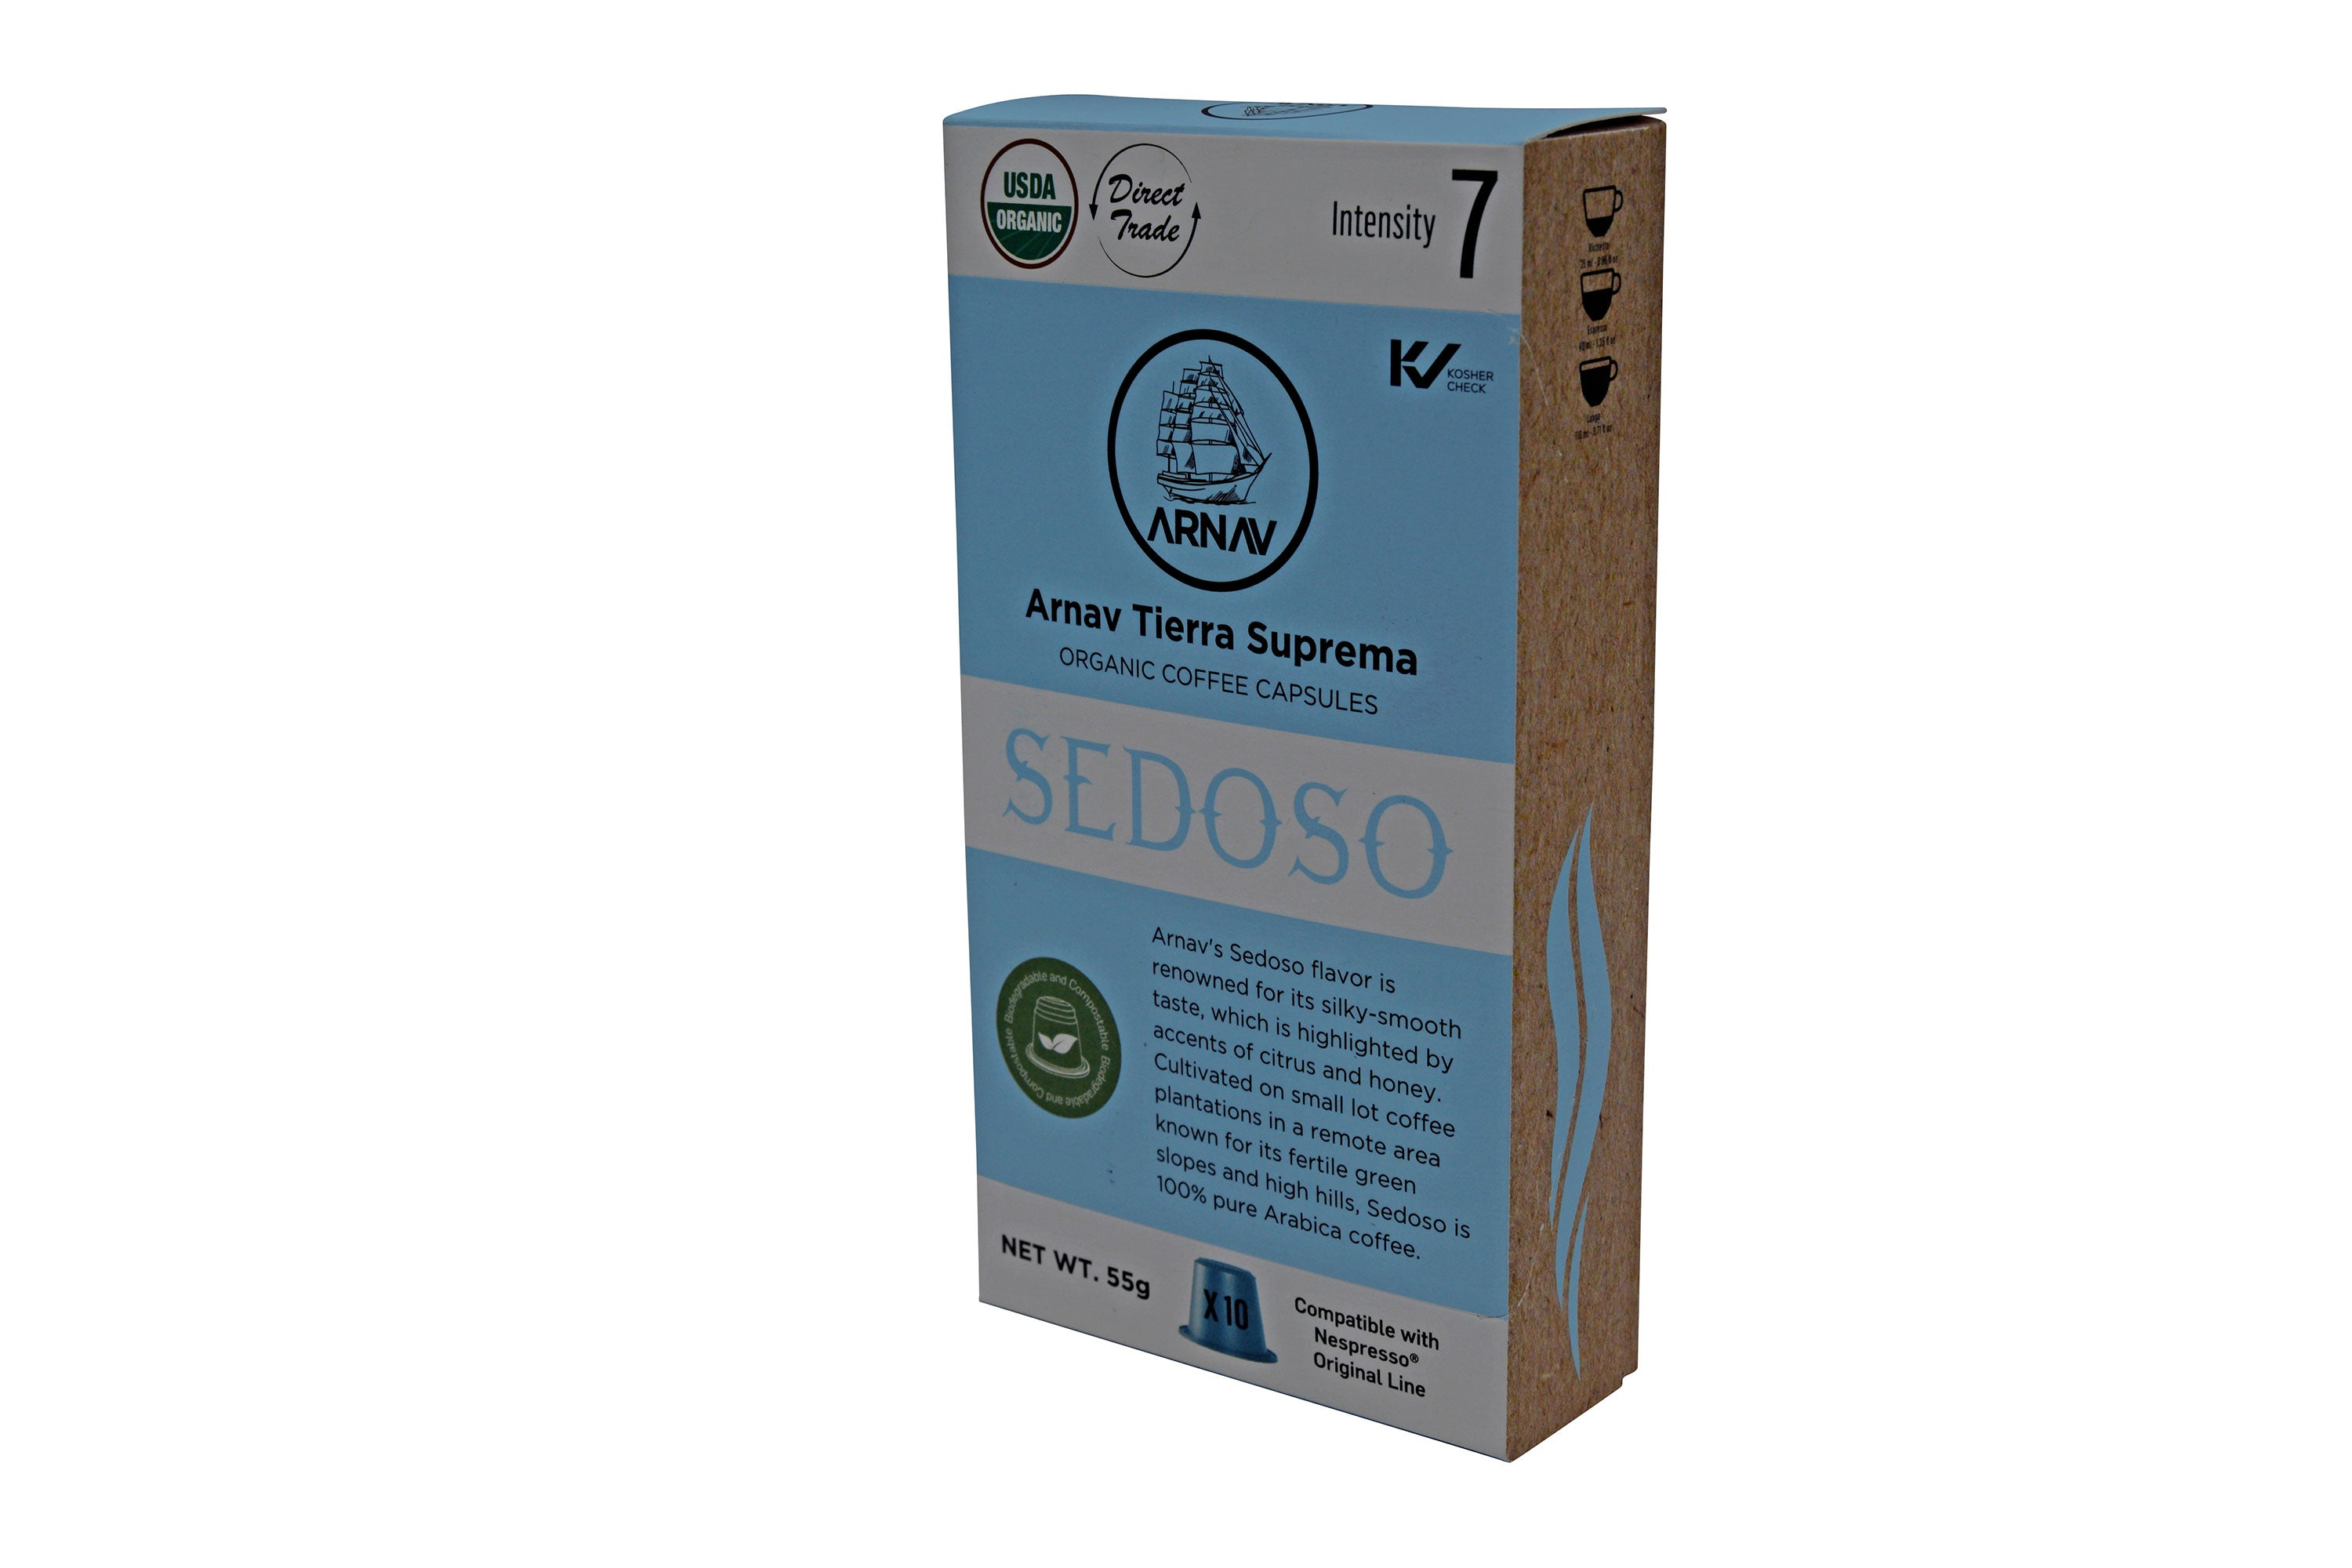 Sedoso Blend Organic Coffee in Biodegradable Capsules